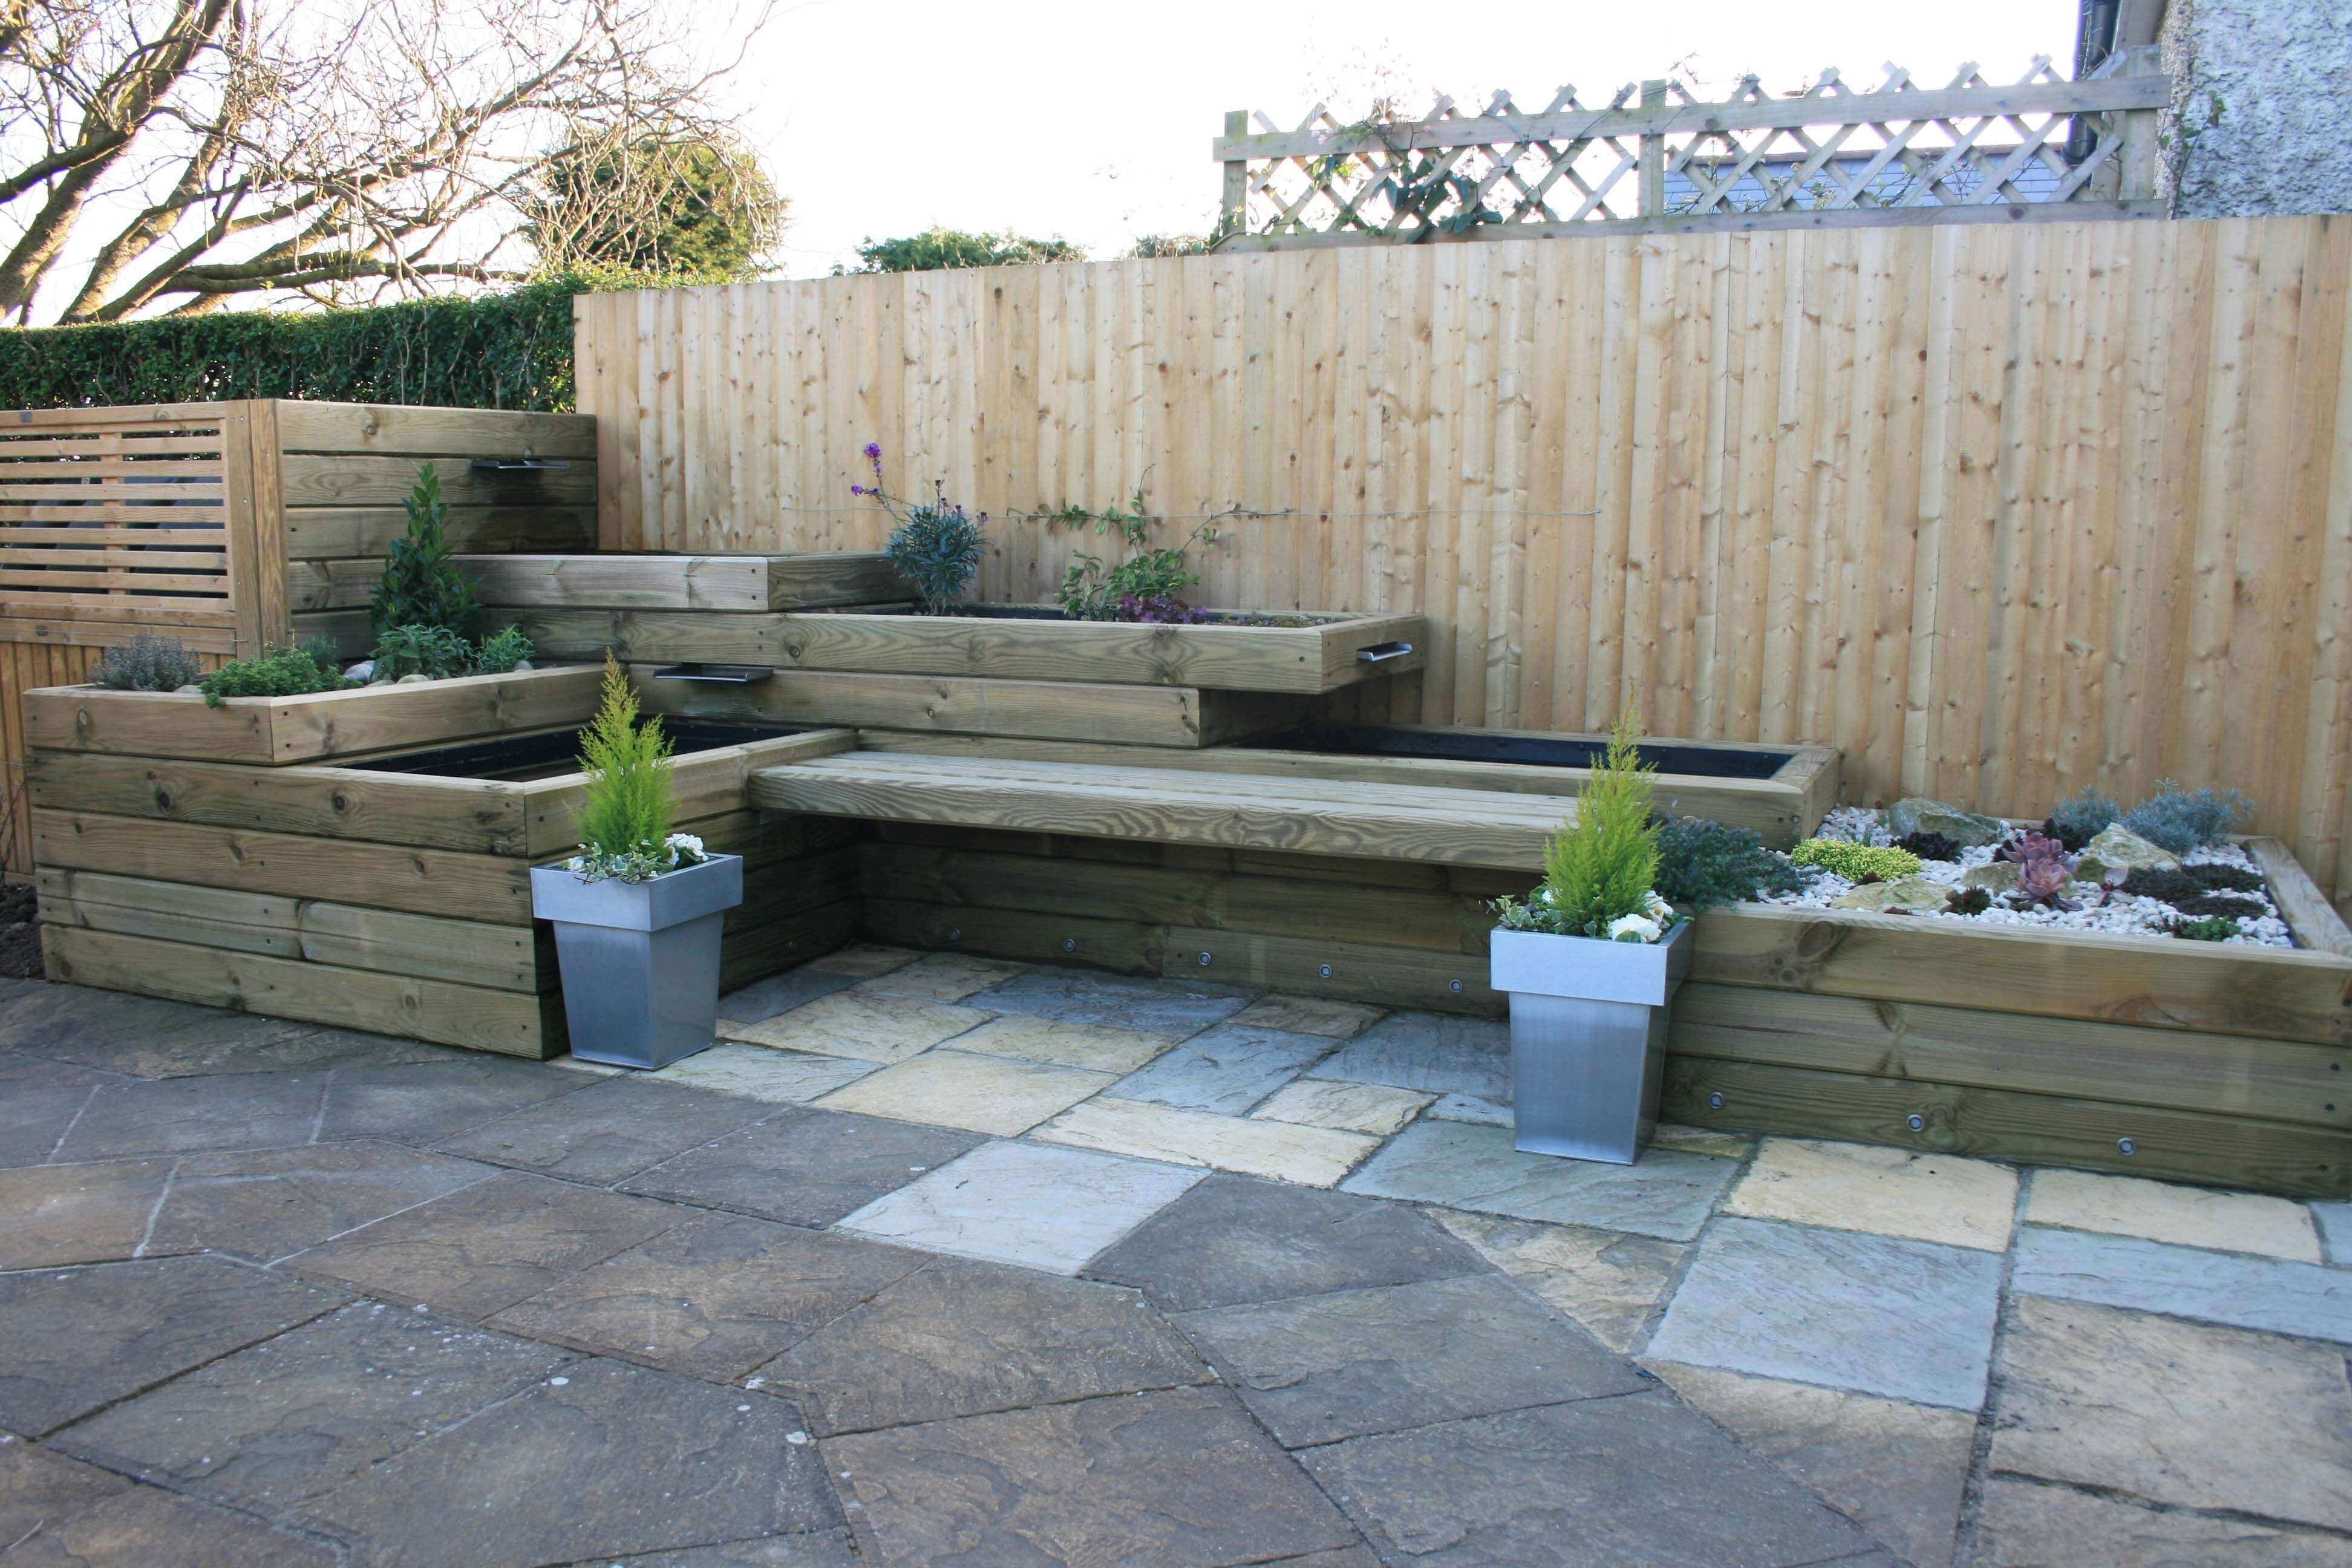 completed garden feature using landscape timbers